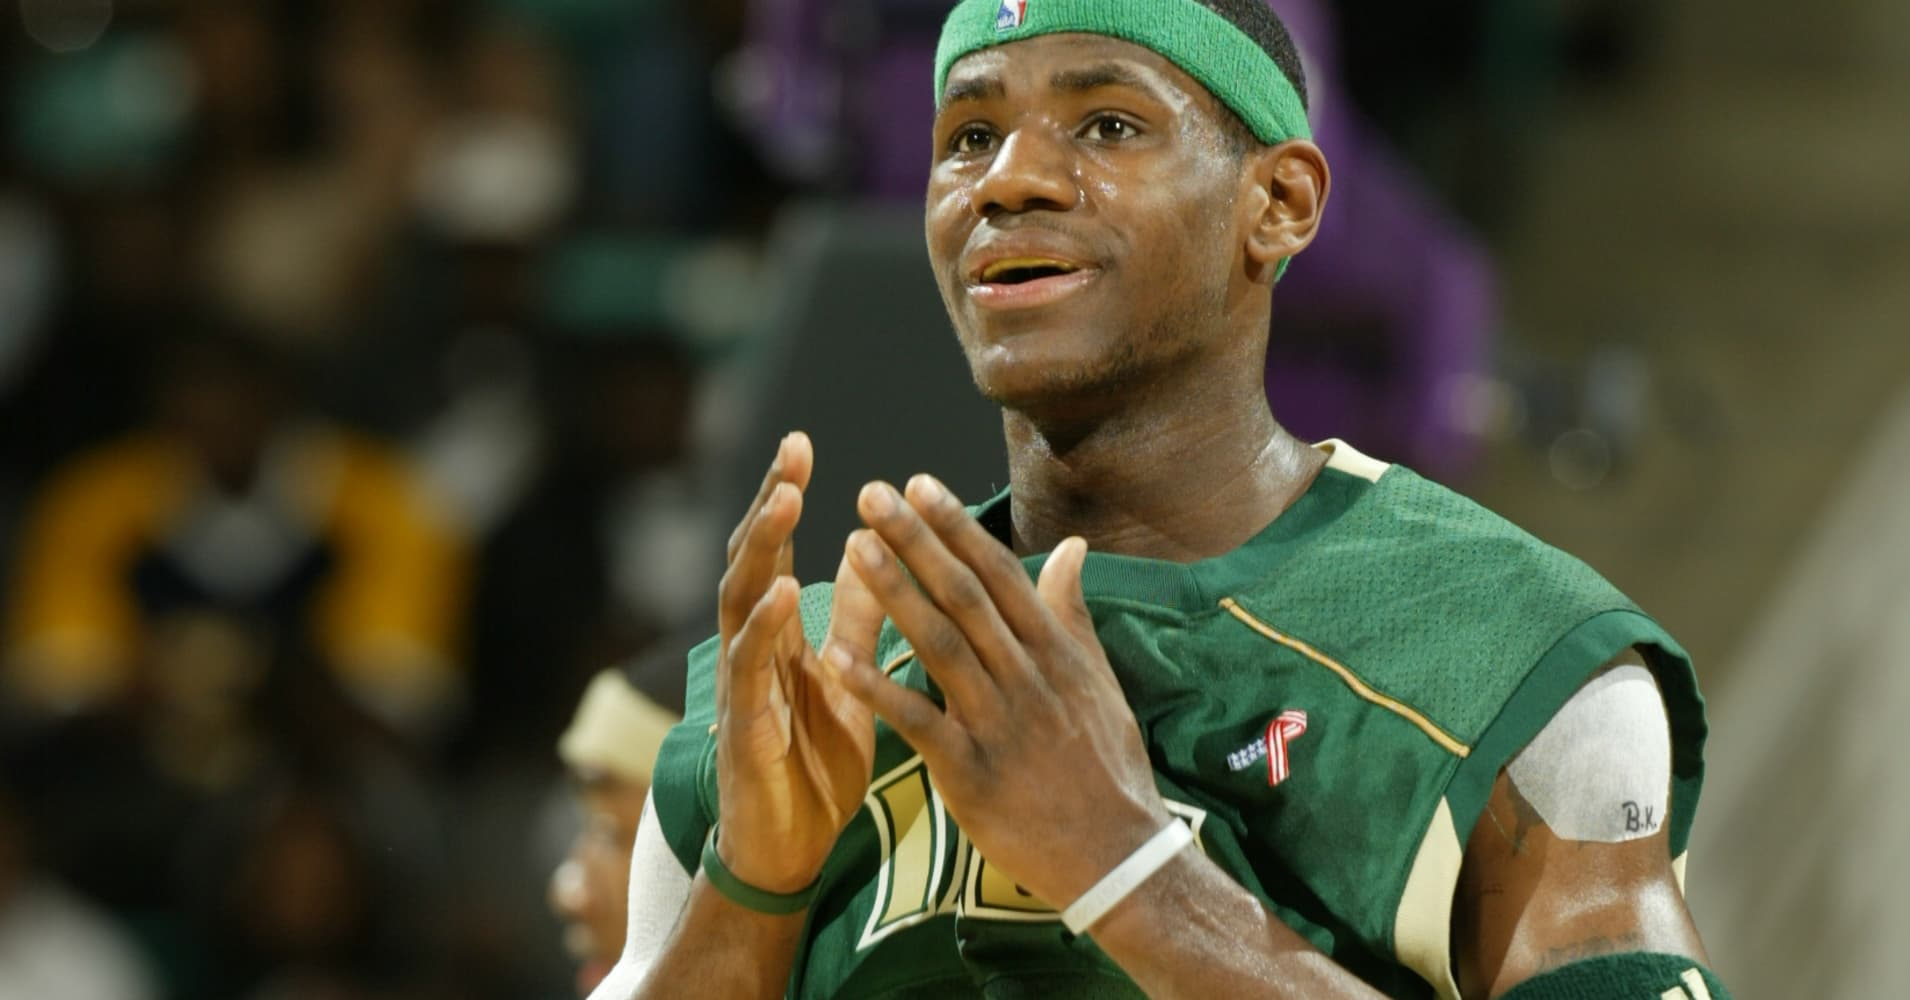 LeBron James turned down $10 million check when he was 18